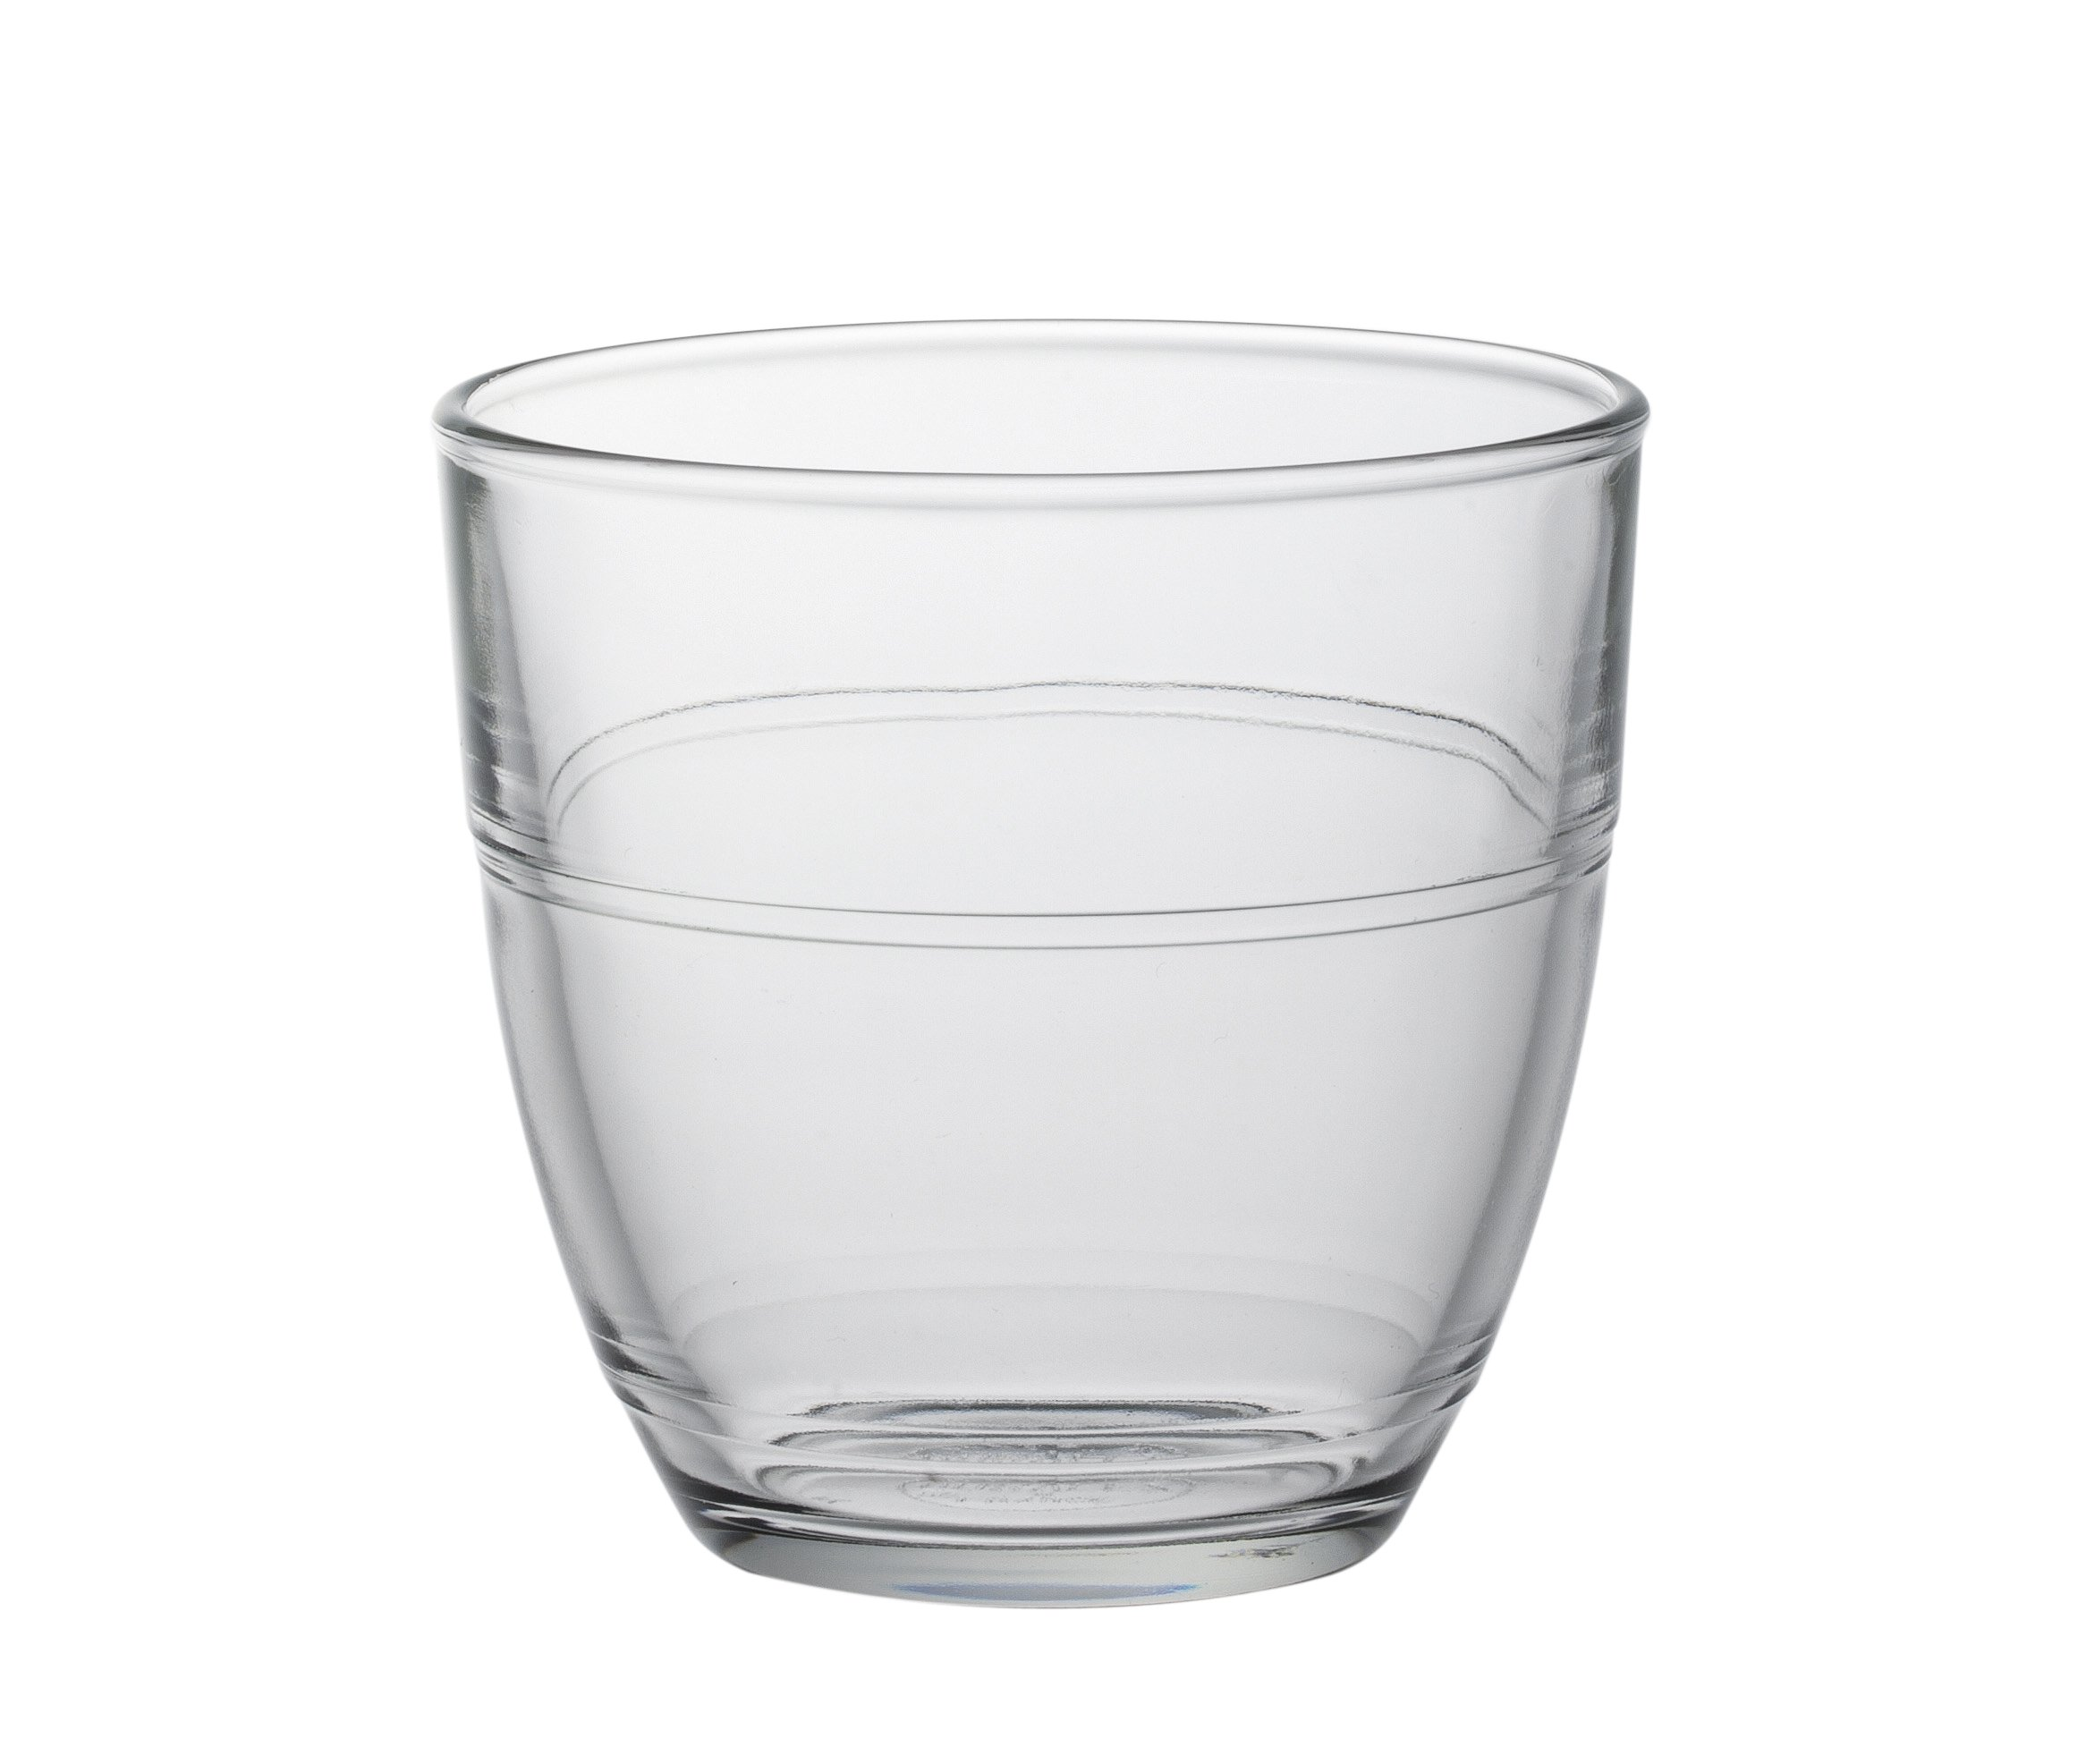 Duralex Set of 6 Tumblers, Clear, 7.75-Oz. by Duralex